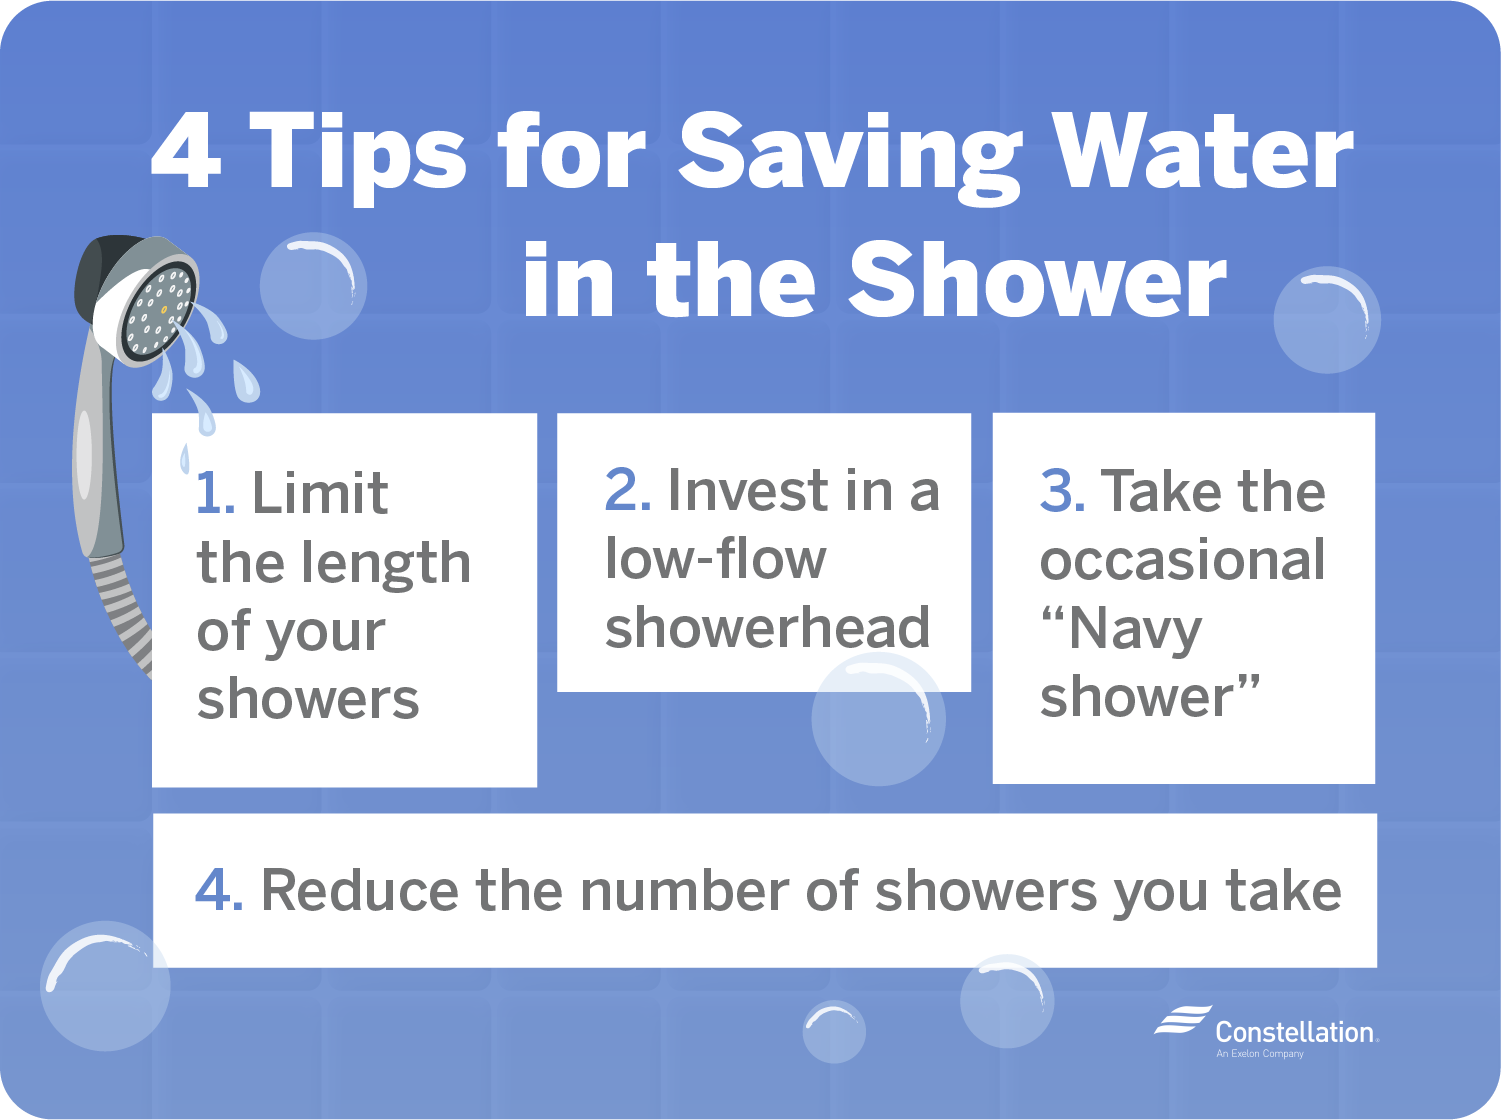 4 tips for saving water in the shower